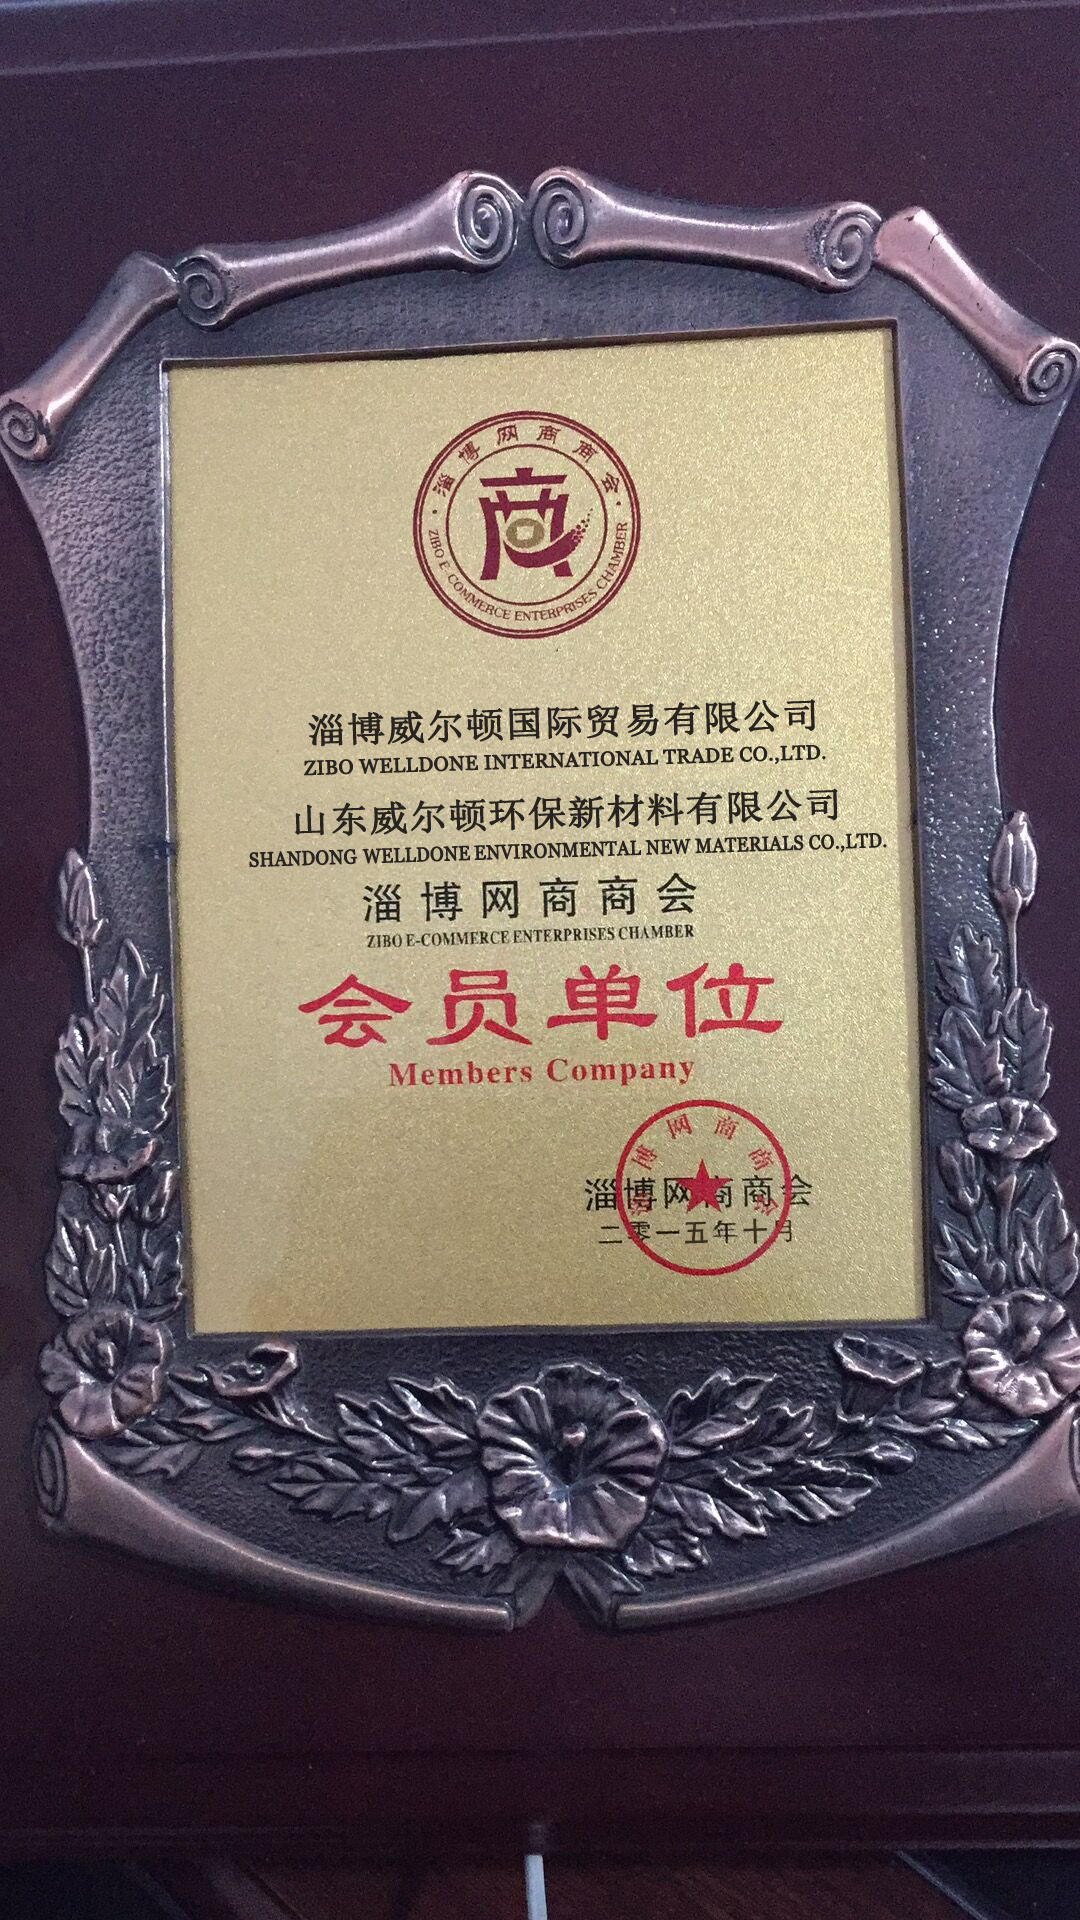 Membre de Zibo E-business Enterprises Chamber